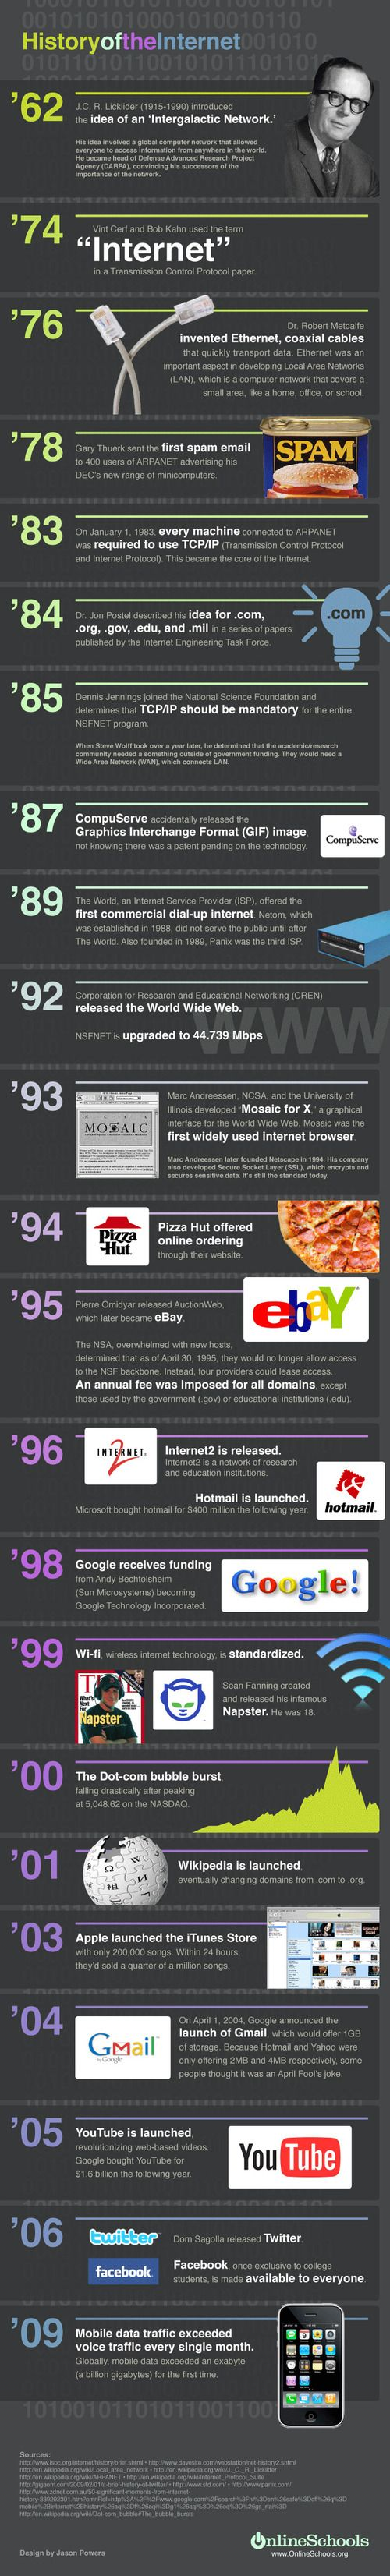 History of the Internet #infographic #infographics #timeline